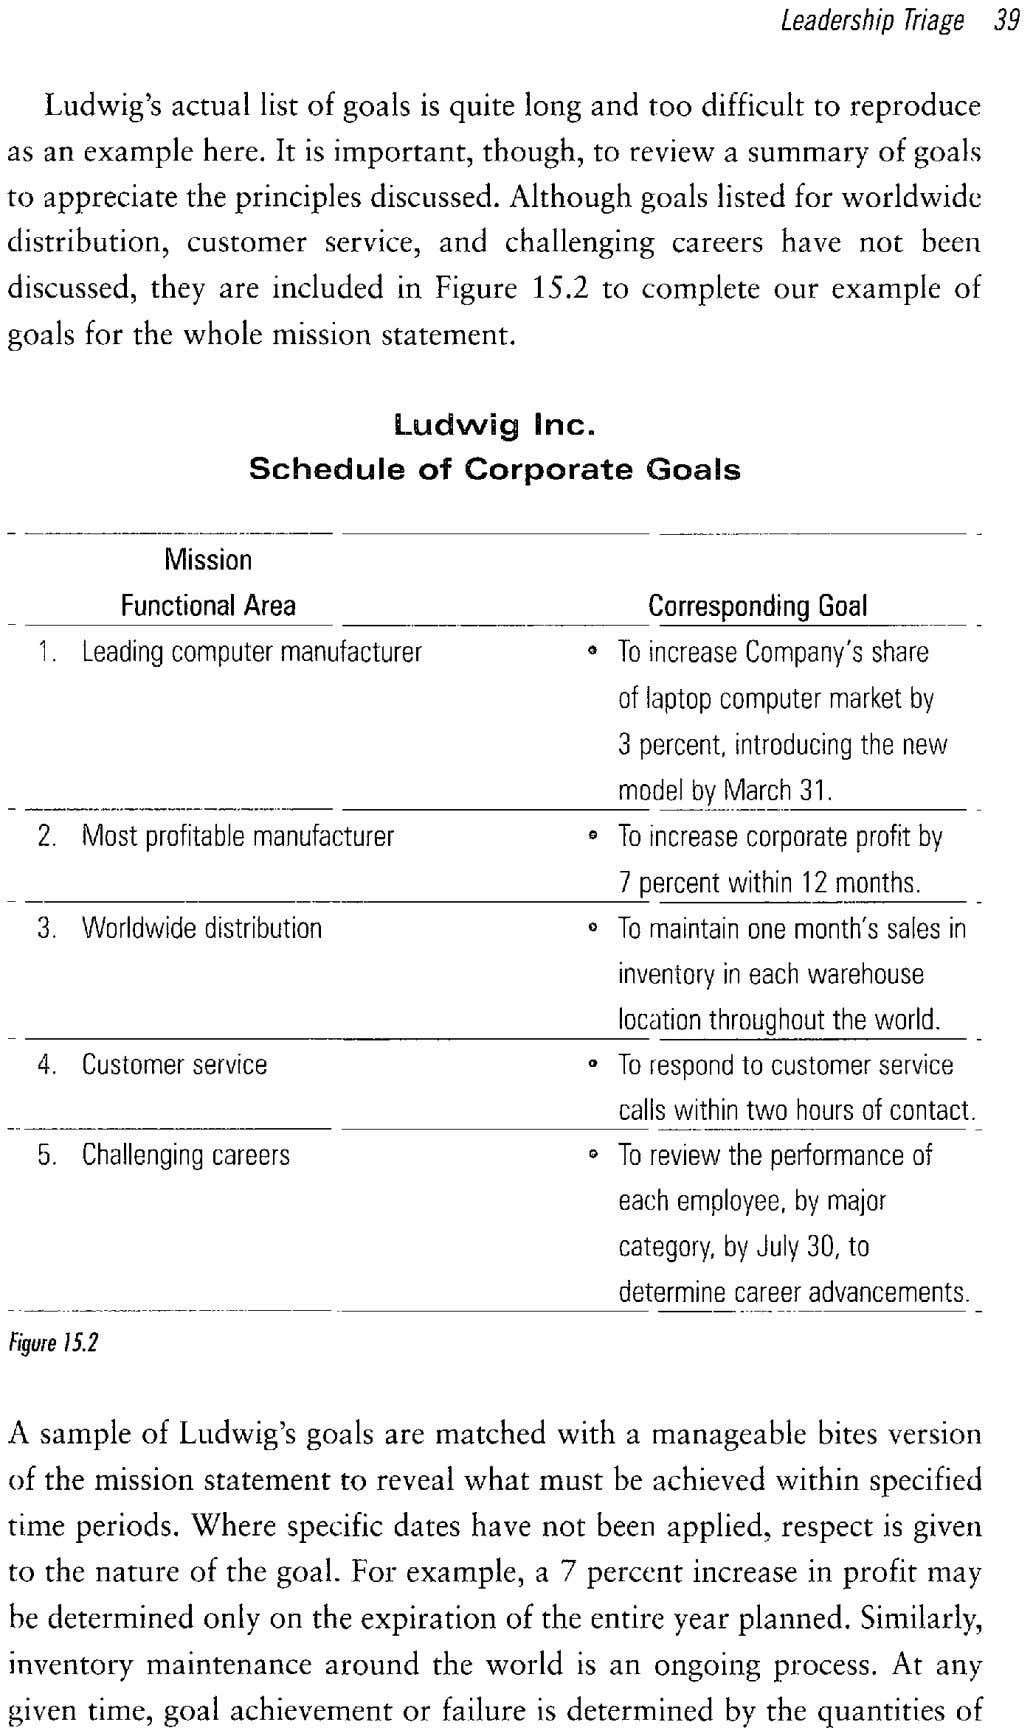 Leadership Triage 39 Ludwig's actual list of goals is quite long and too difficult to